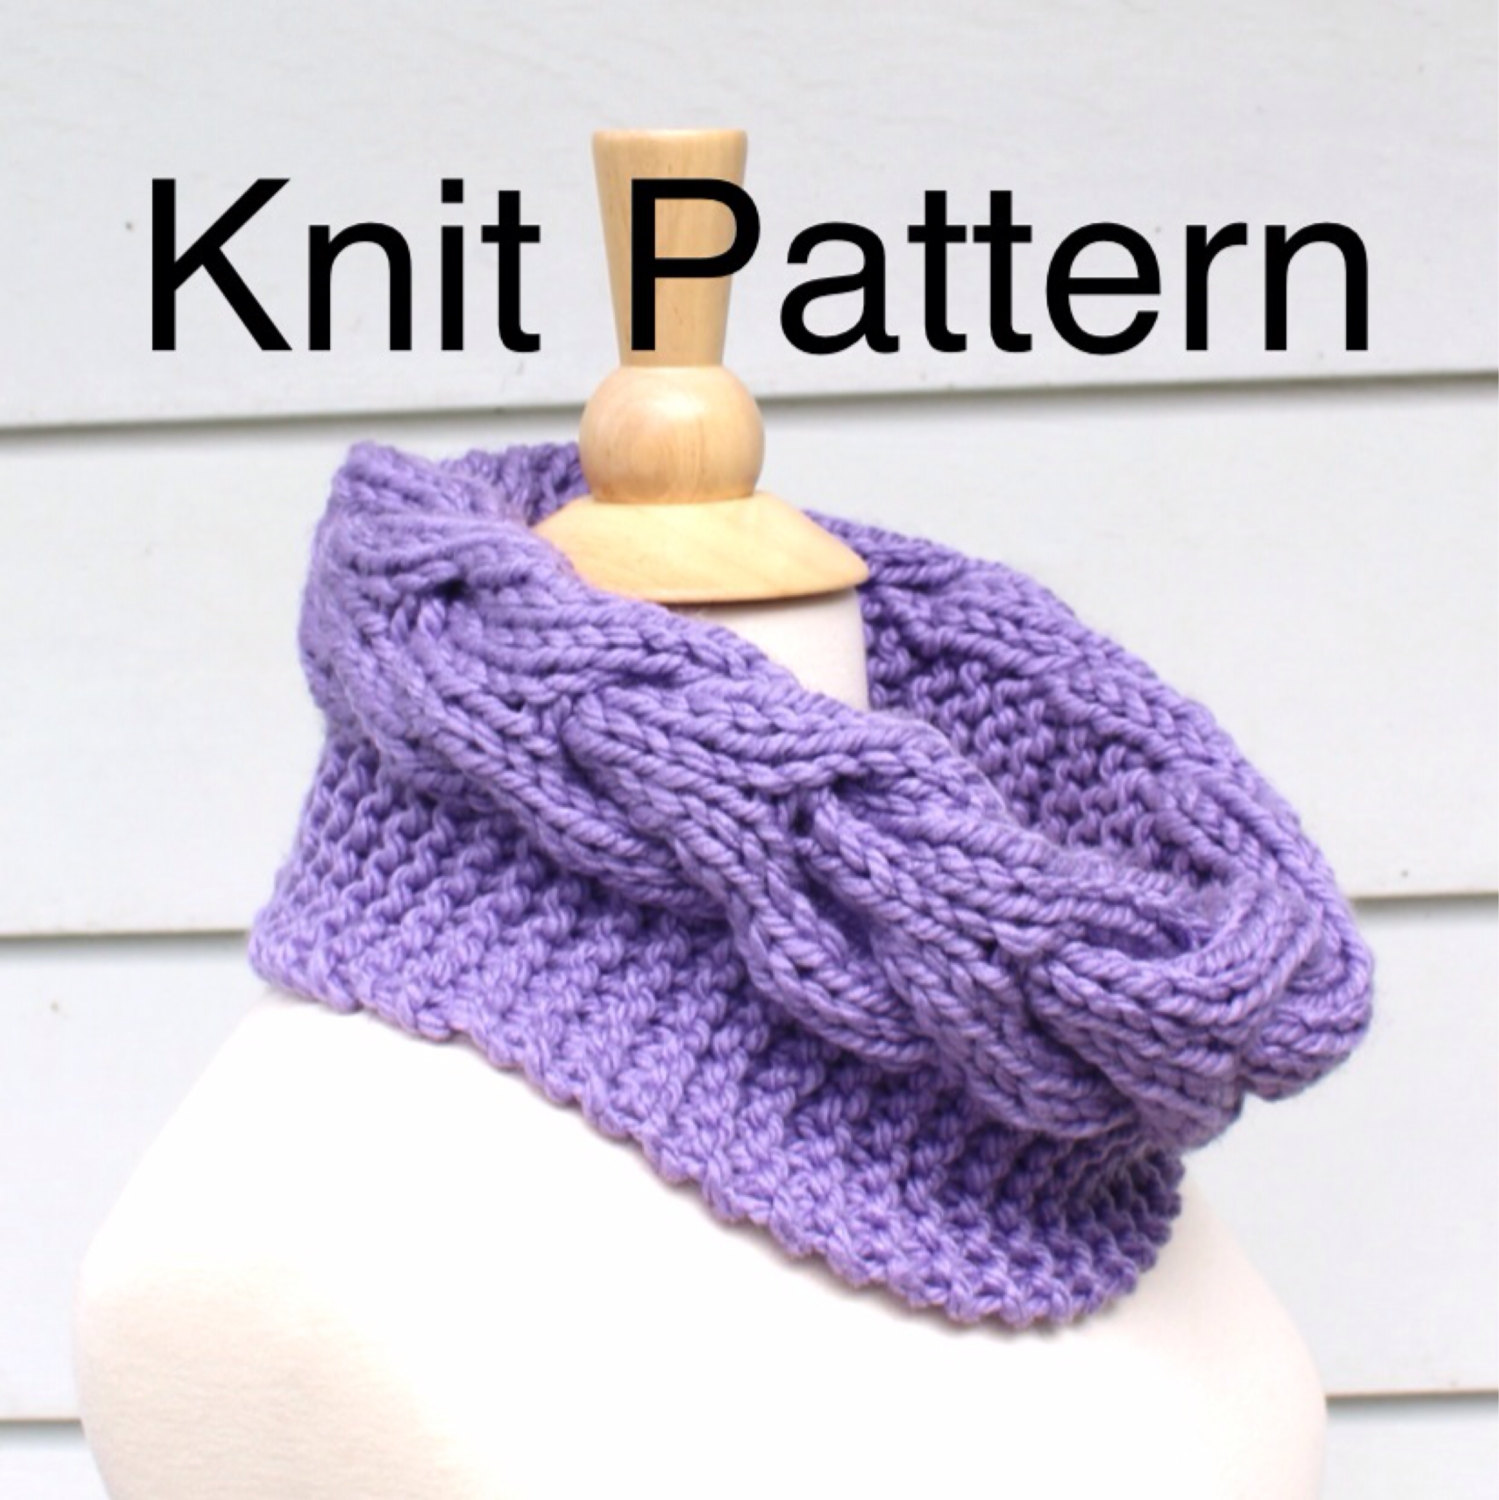 Snowman Knitting Patterns : Knit Pattern Cowl Pattern- Hand Knit Cowl Scarf Pattern With A Horseshoe Cabl...